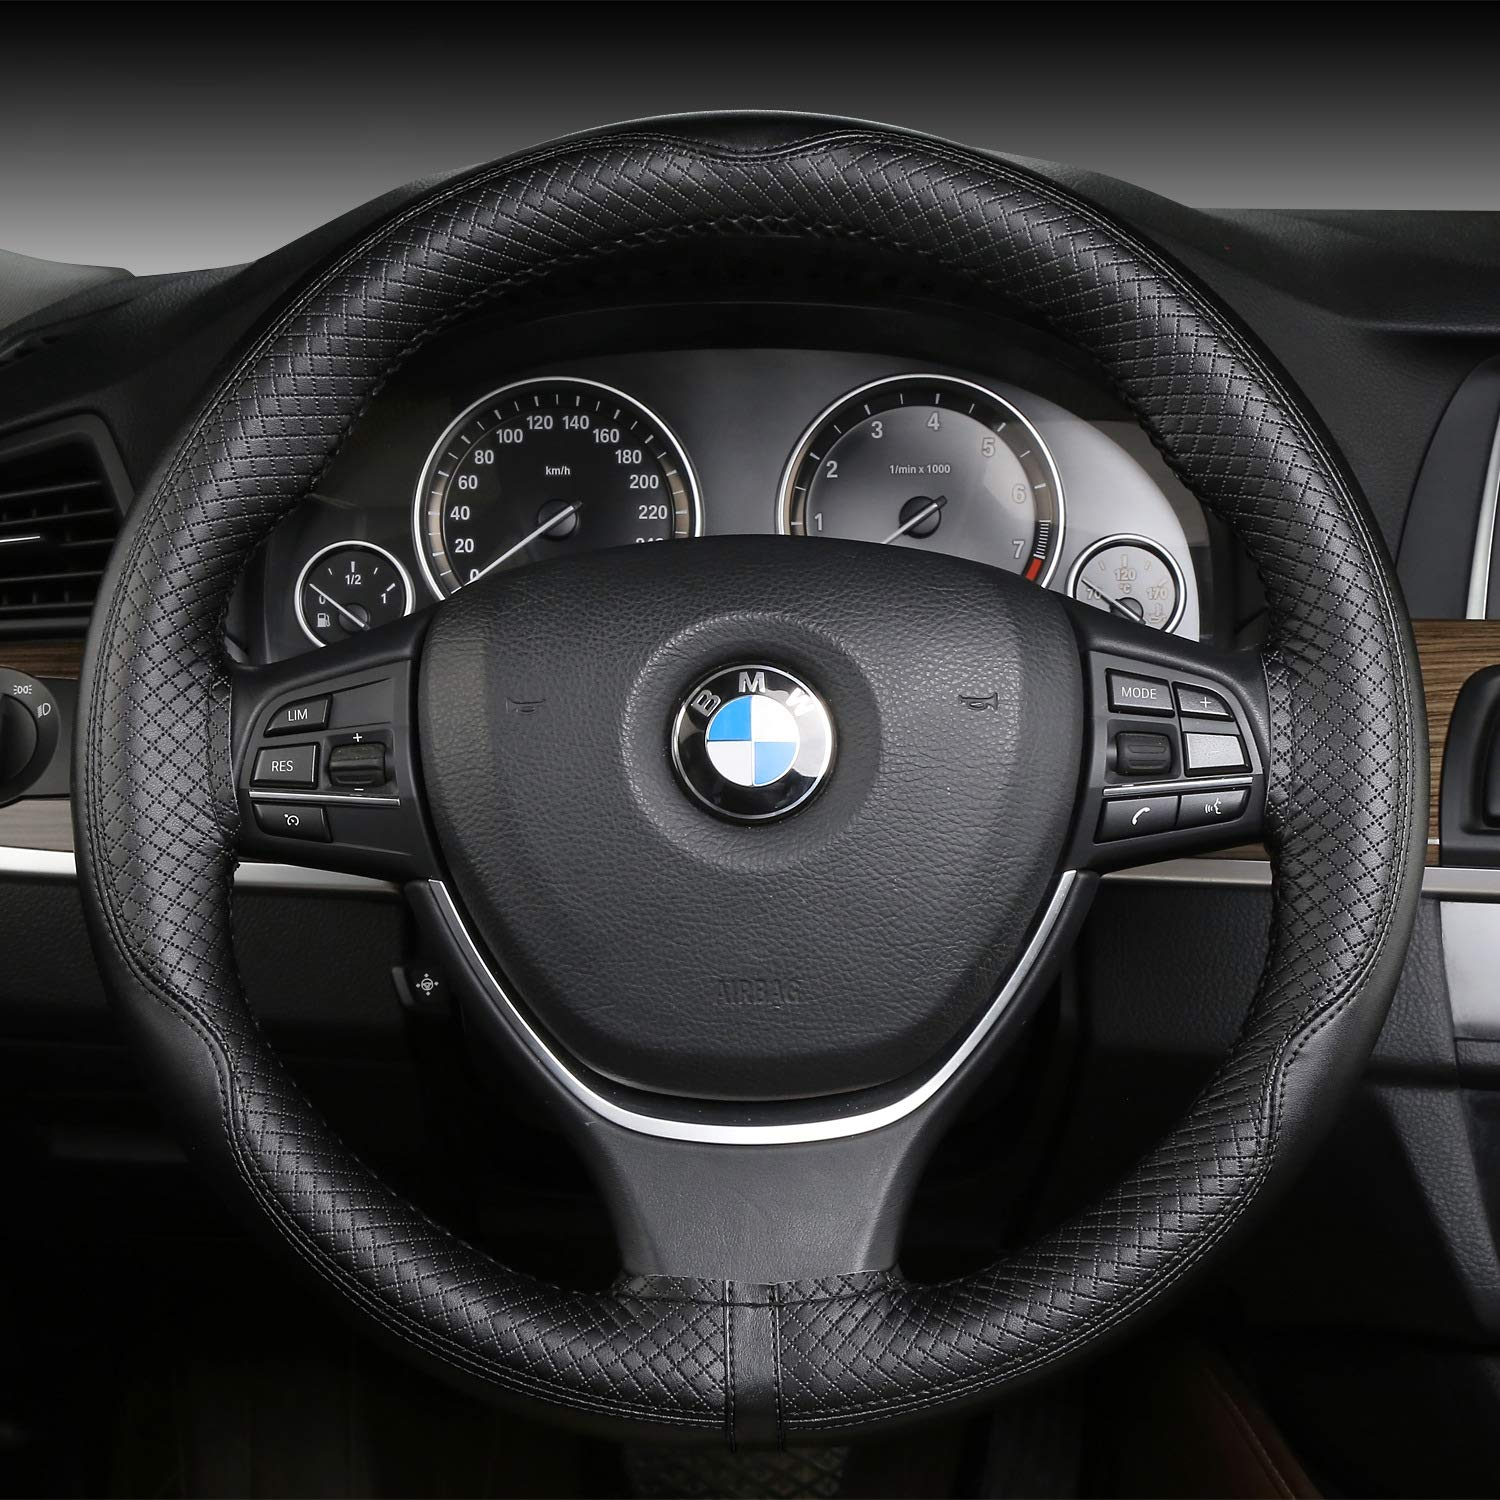 Amazon.com: Car steering wheel cover, hand-stitched steering wheel cover, embossed leather handle cover,White: Automotive